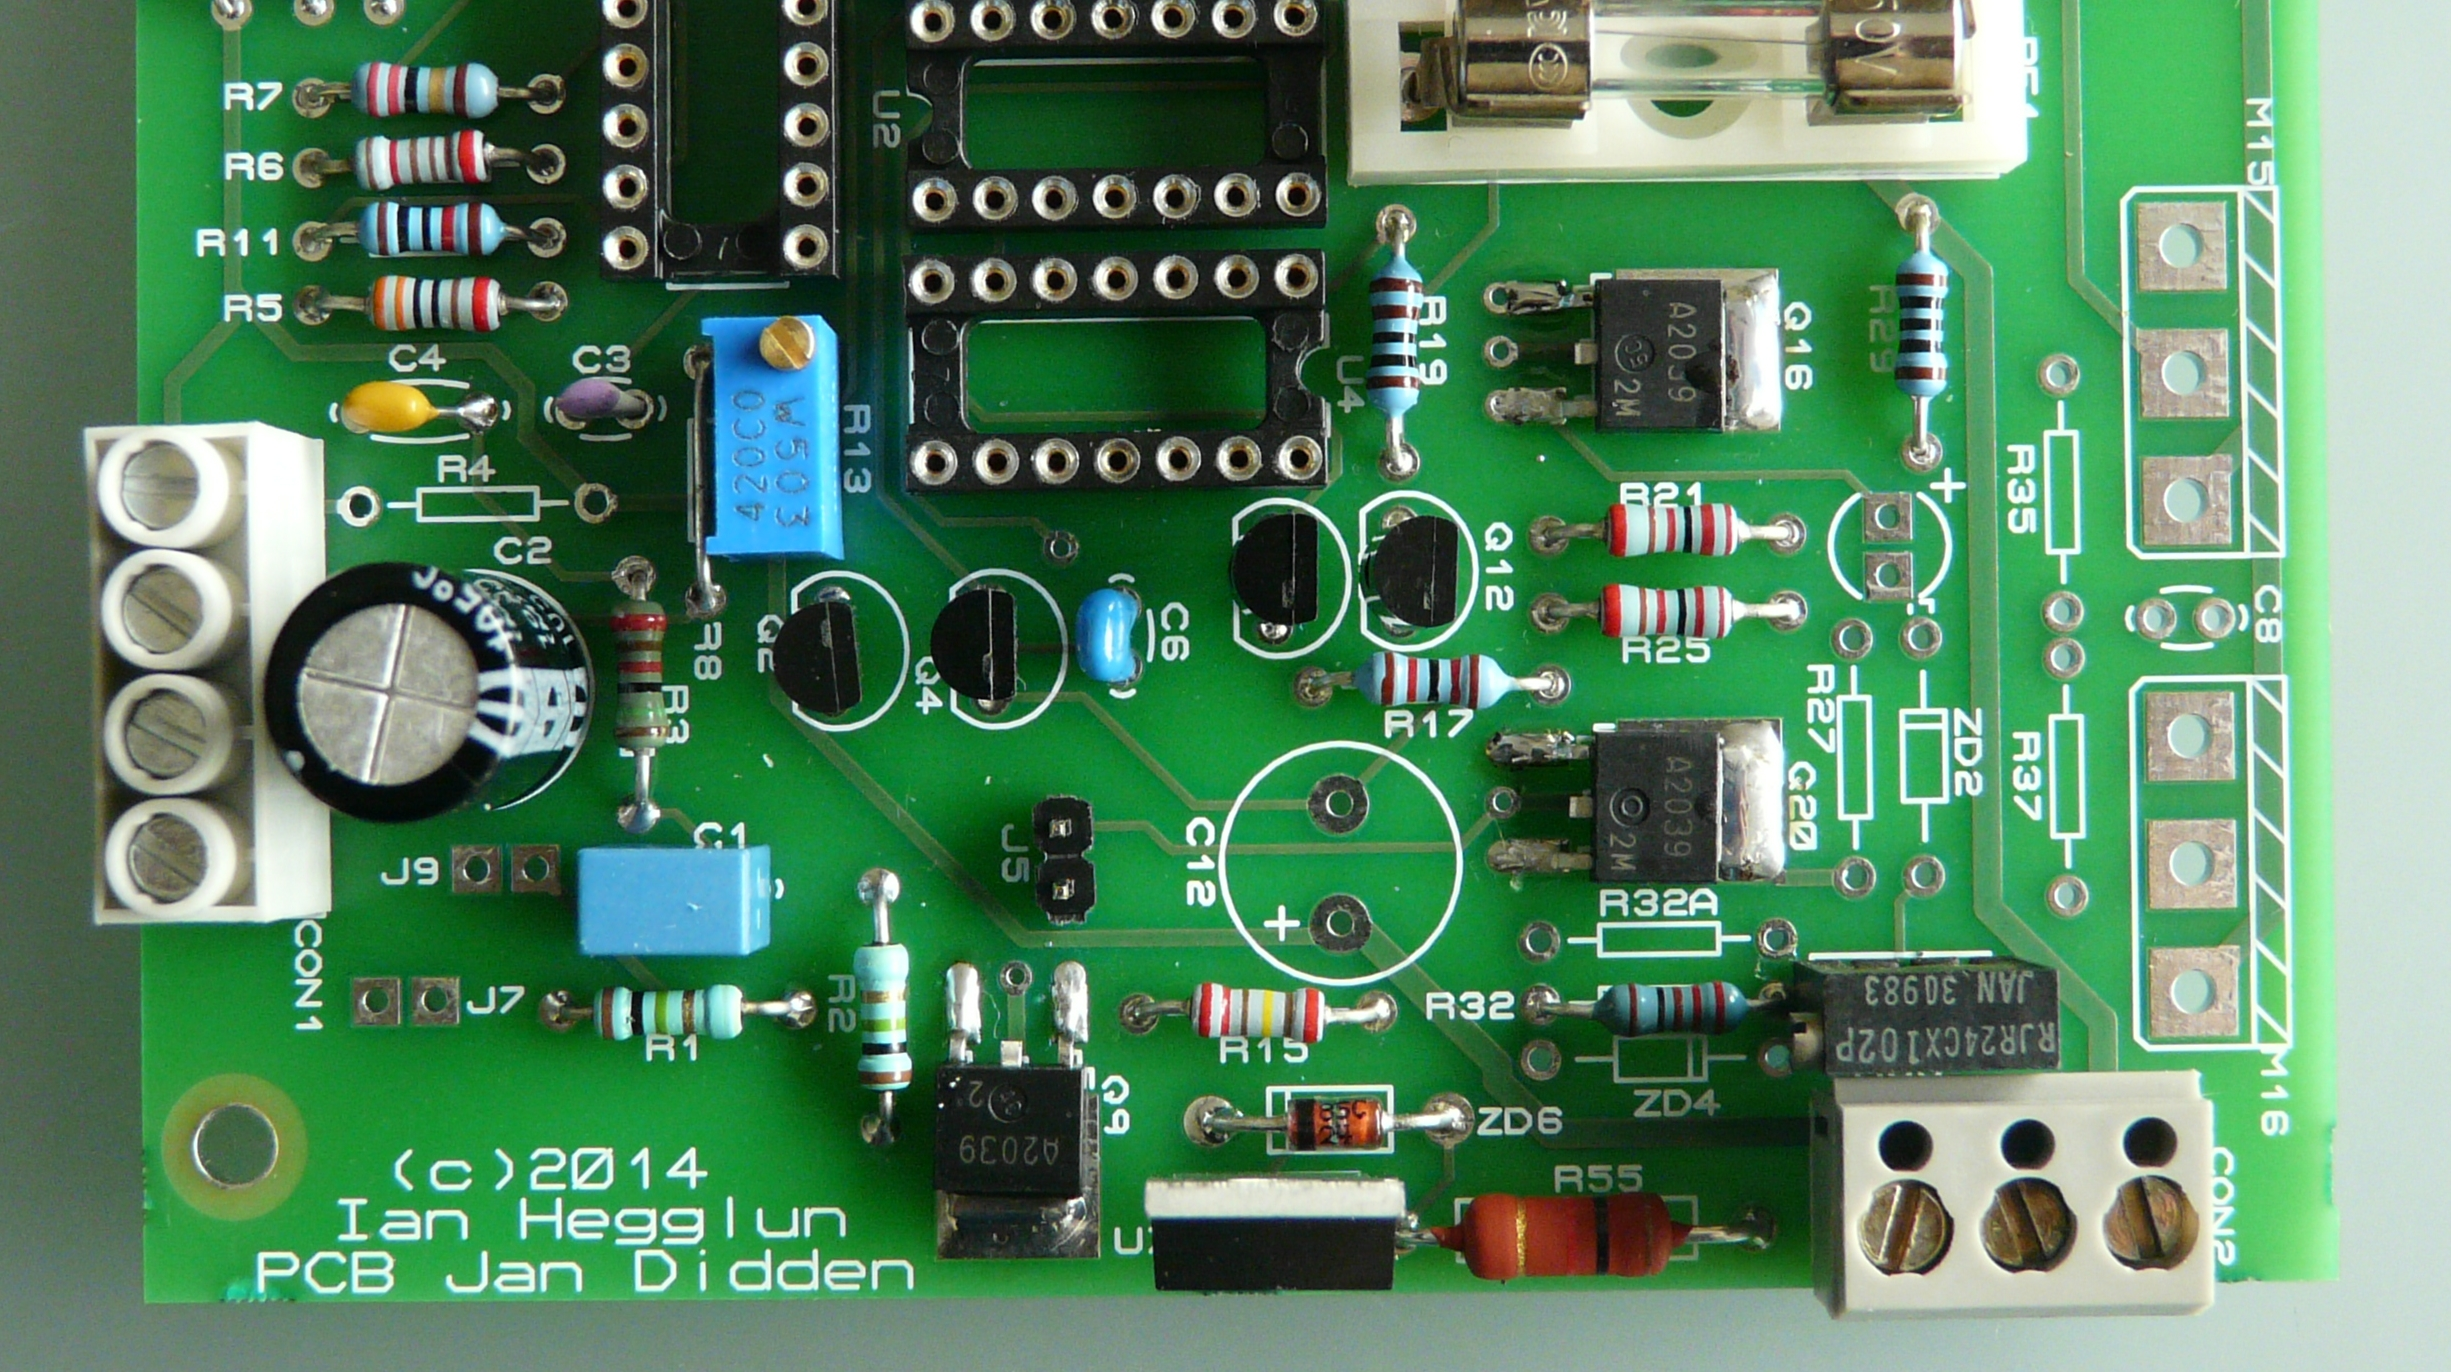 Oops Linear Audio Rc Coupled Transistor Amplifier Circuit Electronics Forum Circuits Ian Hegglun Cube Law Class A Pcb Footprint Error